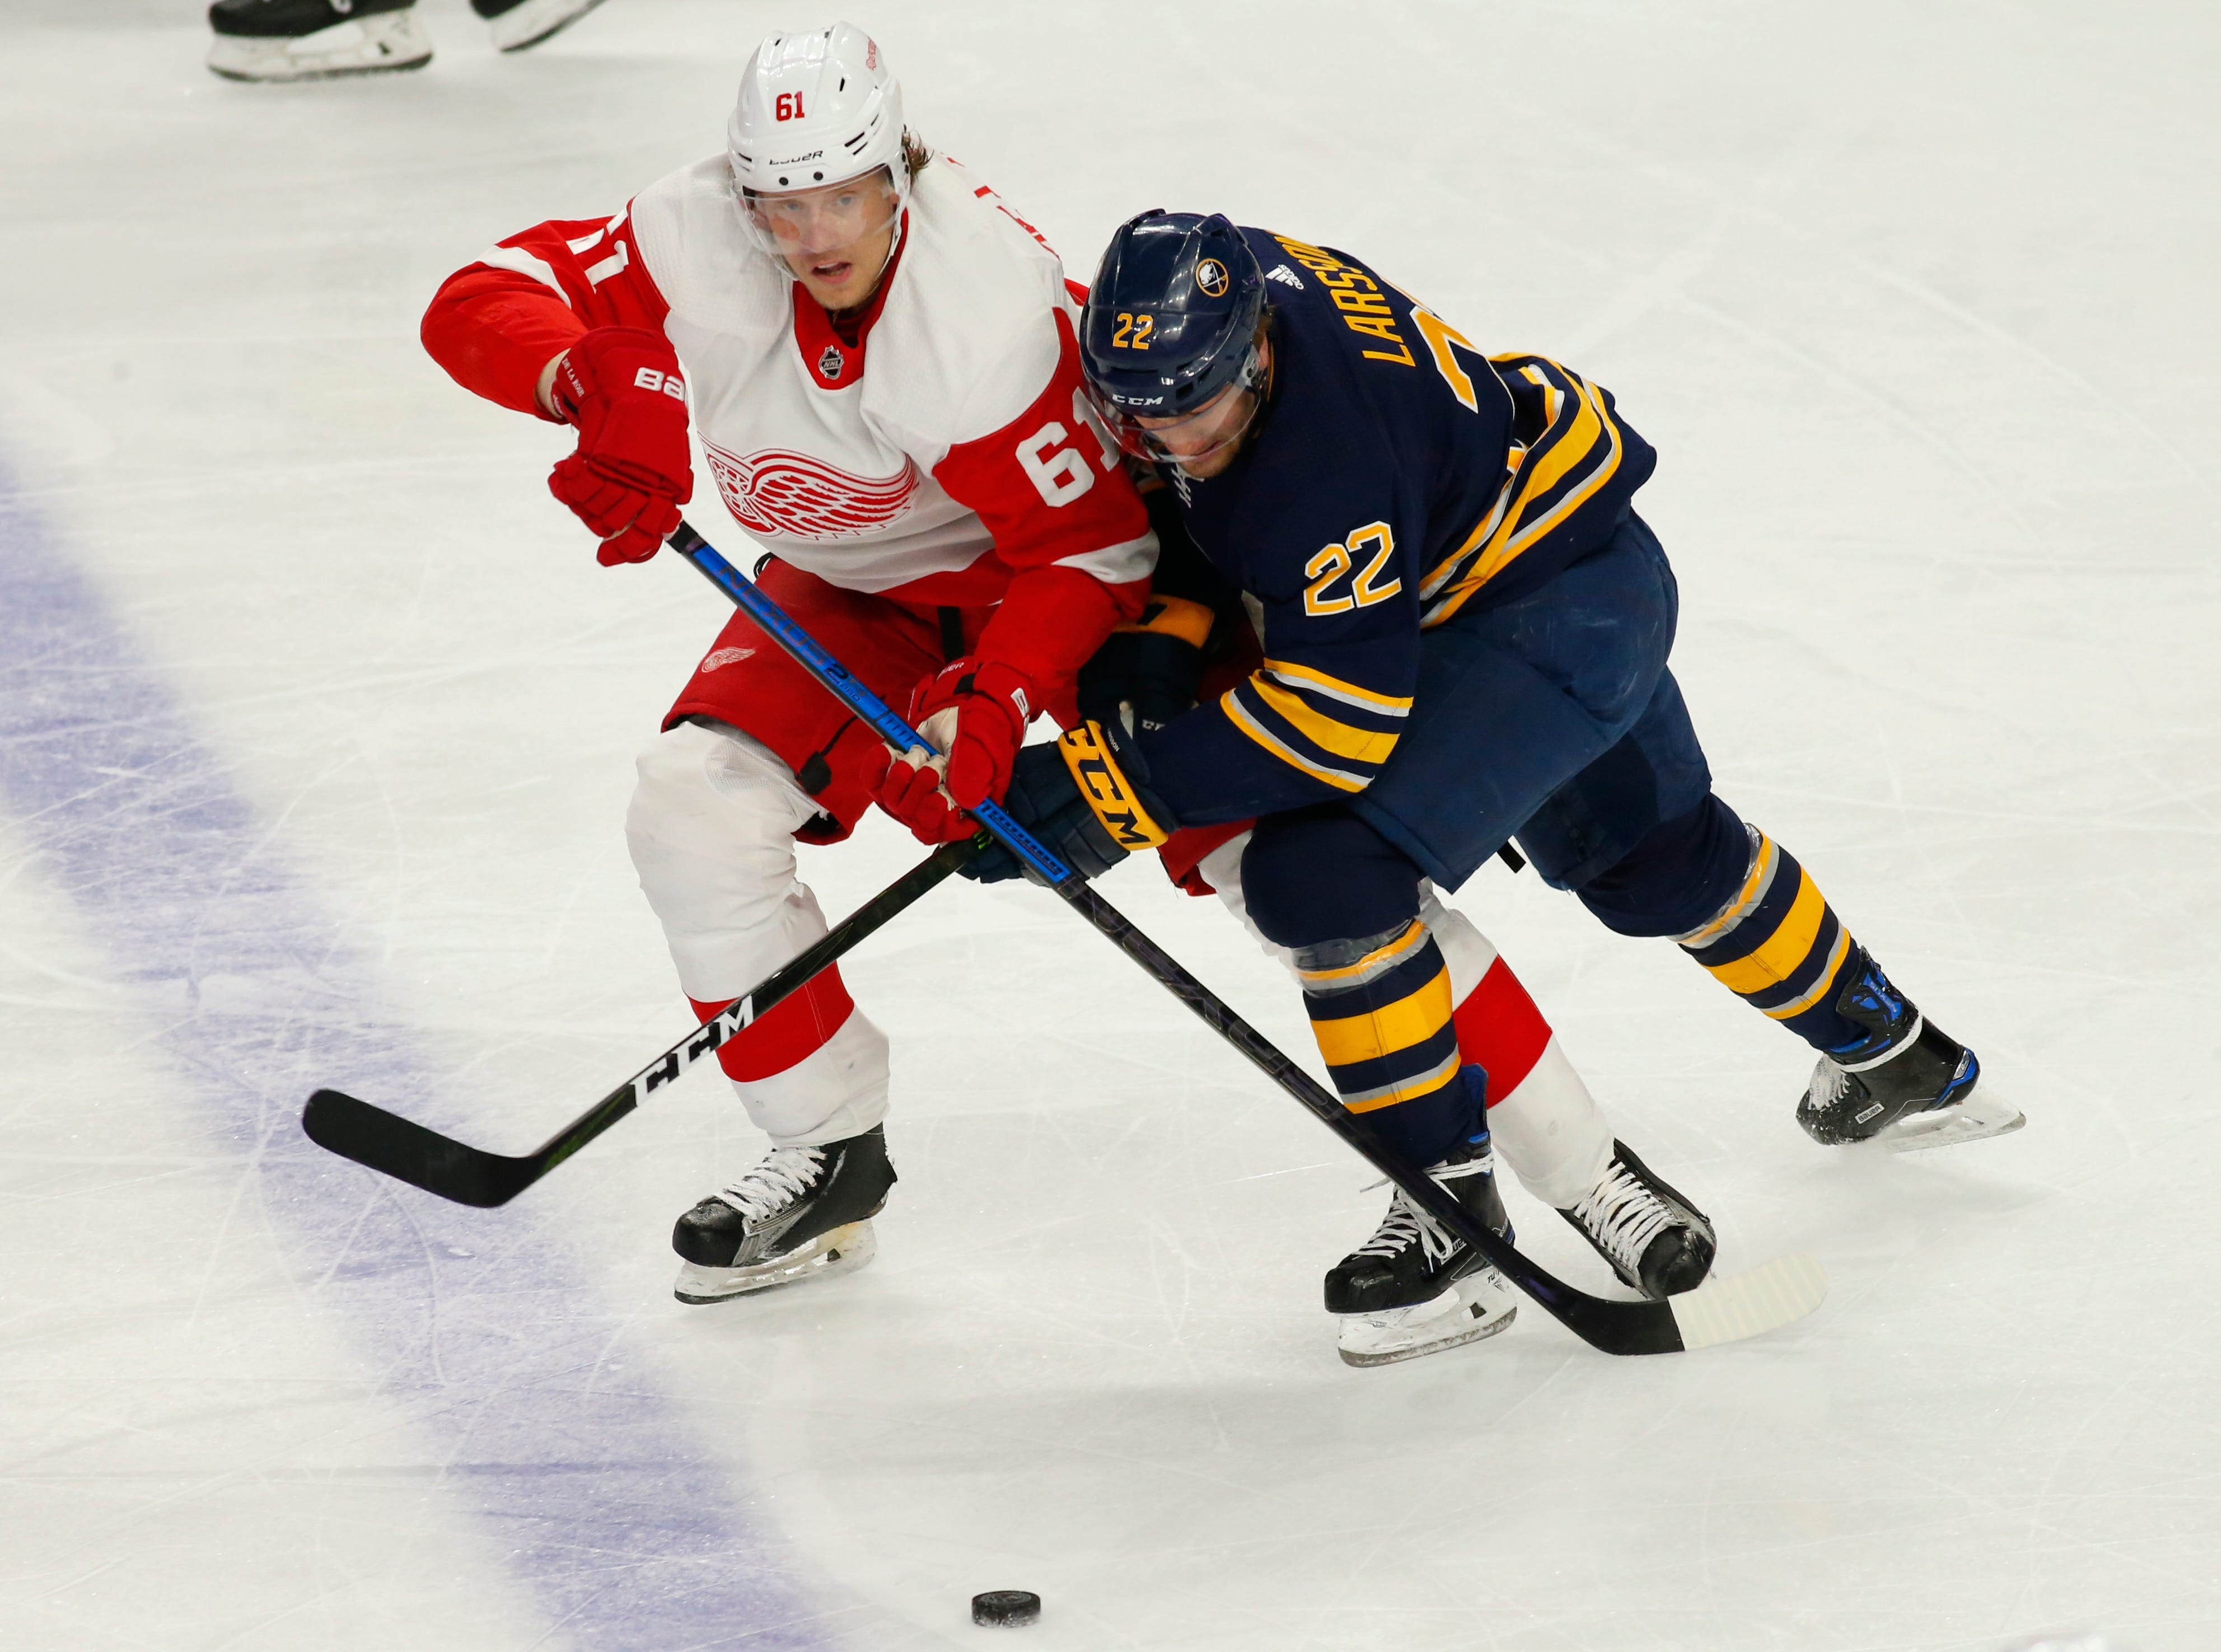 Buffalo Sabres forward Johan Larsson (22) and Detroit Red Wings forward Jacob de la Rose battle for the puck during the first period of an NHL hockey game, Saturday, Feb. 9, 2019, in Buffalo N.Y. (AP Photo/Jeffrey T. Barnes)